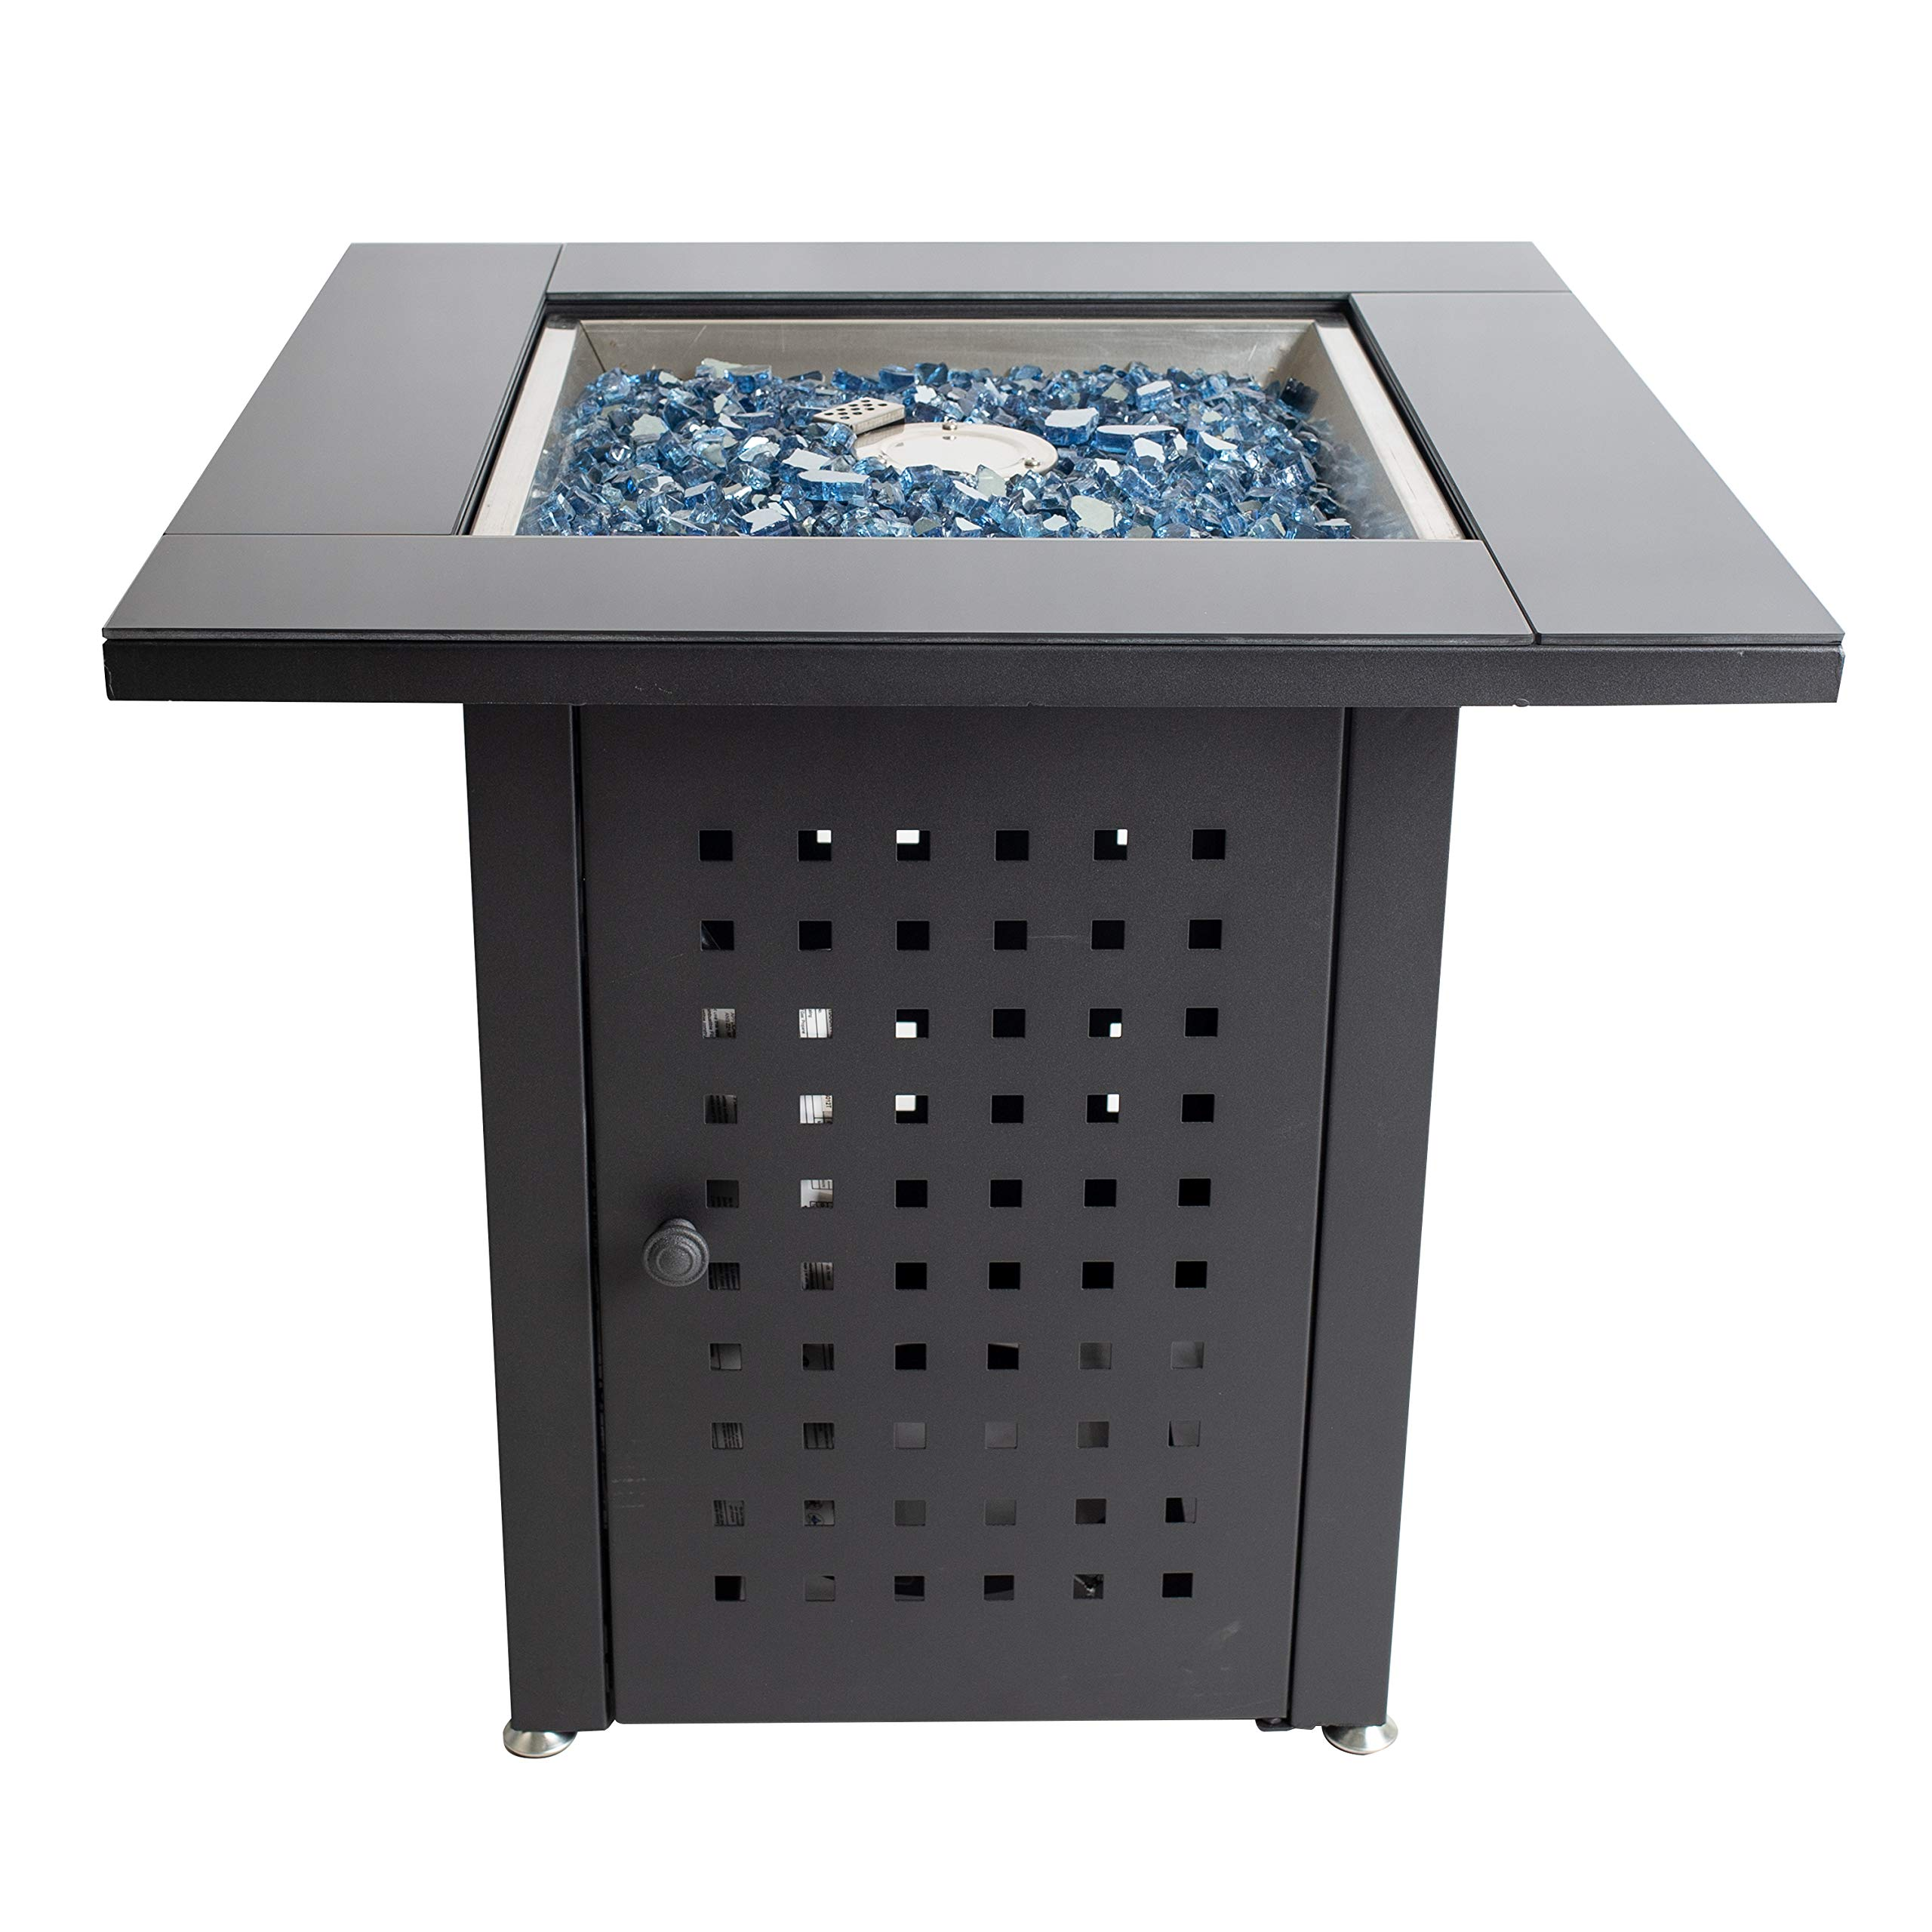 Pleasant Hearth OFG012T Lockwood Table Gas fire Pit, Matte Black/Glass Top by Pleasant Hearth